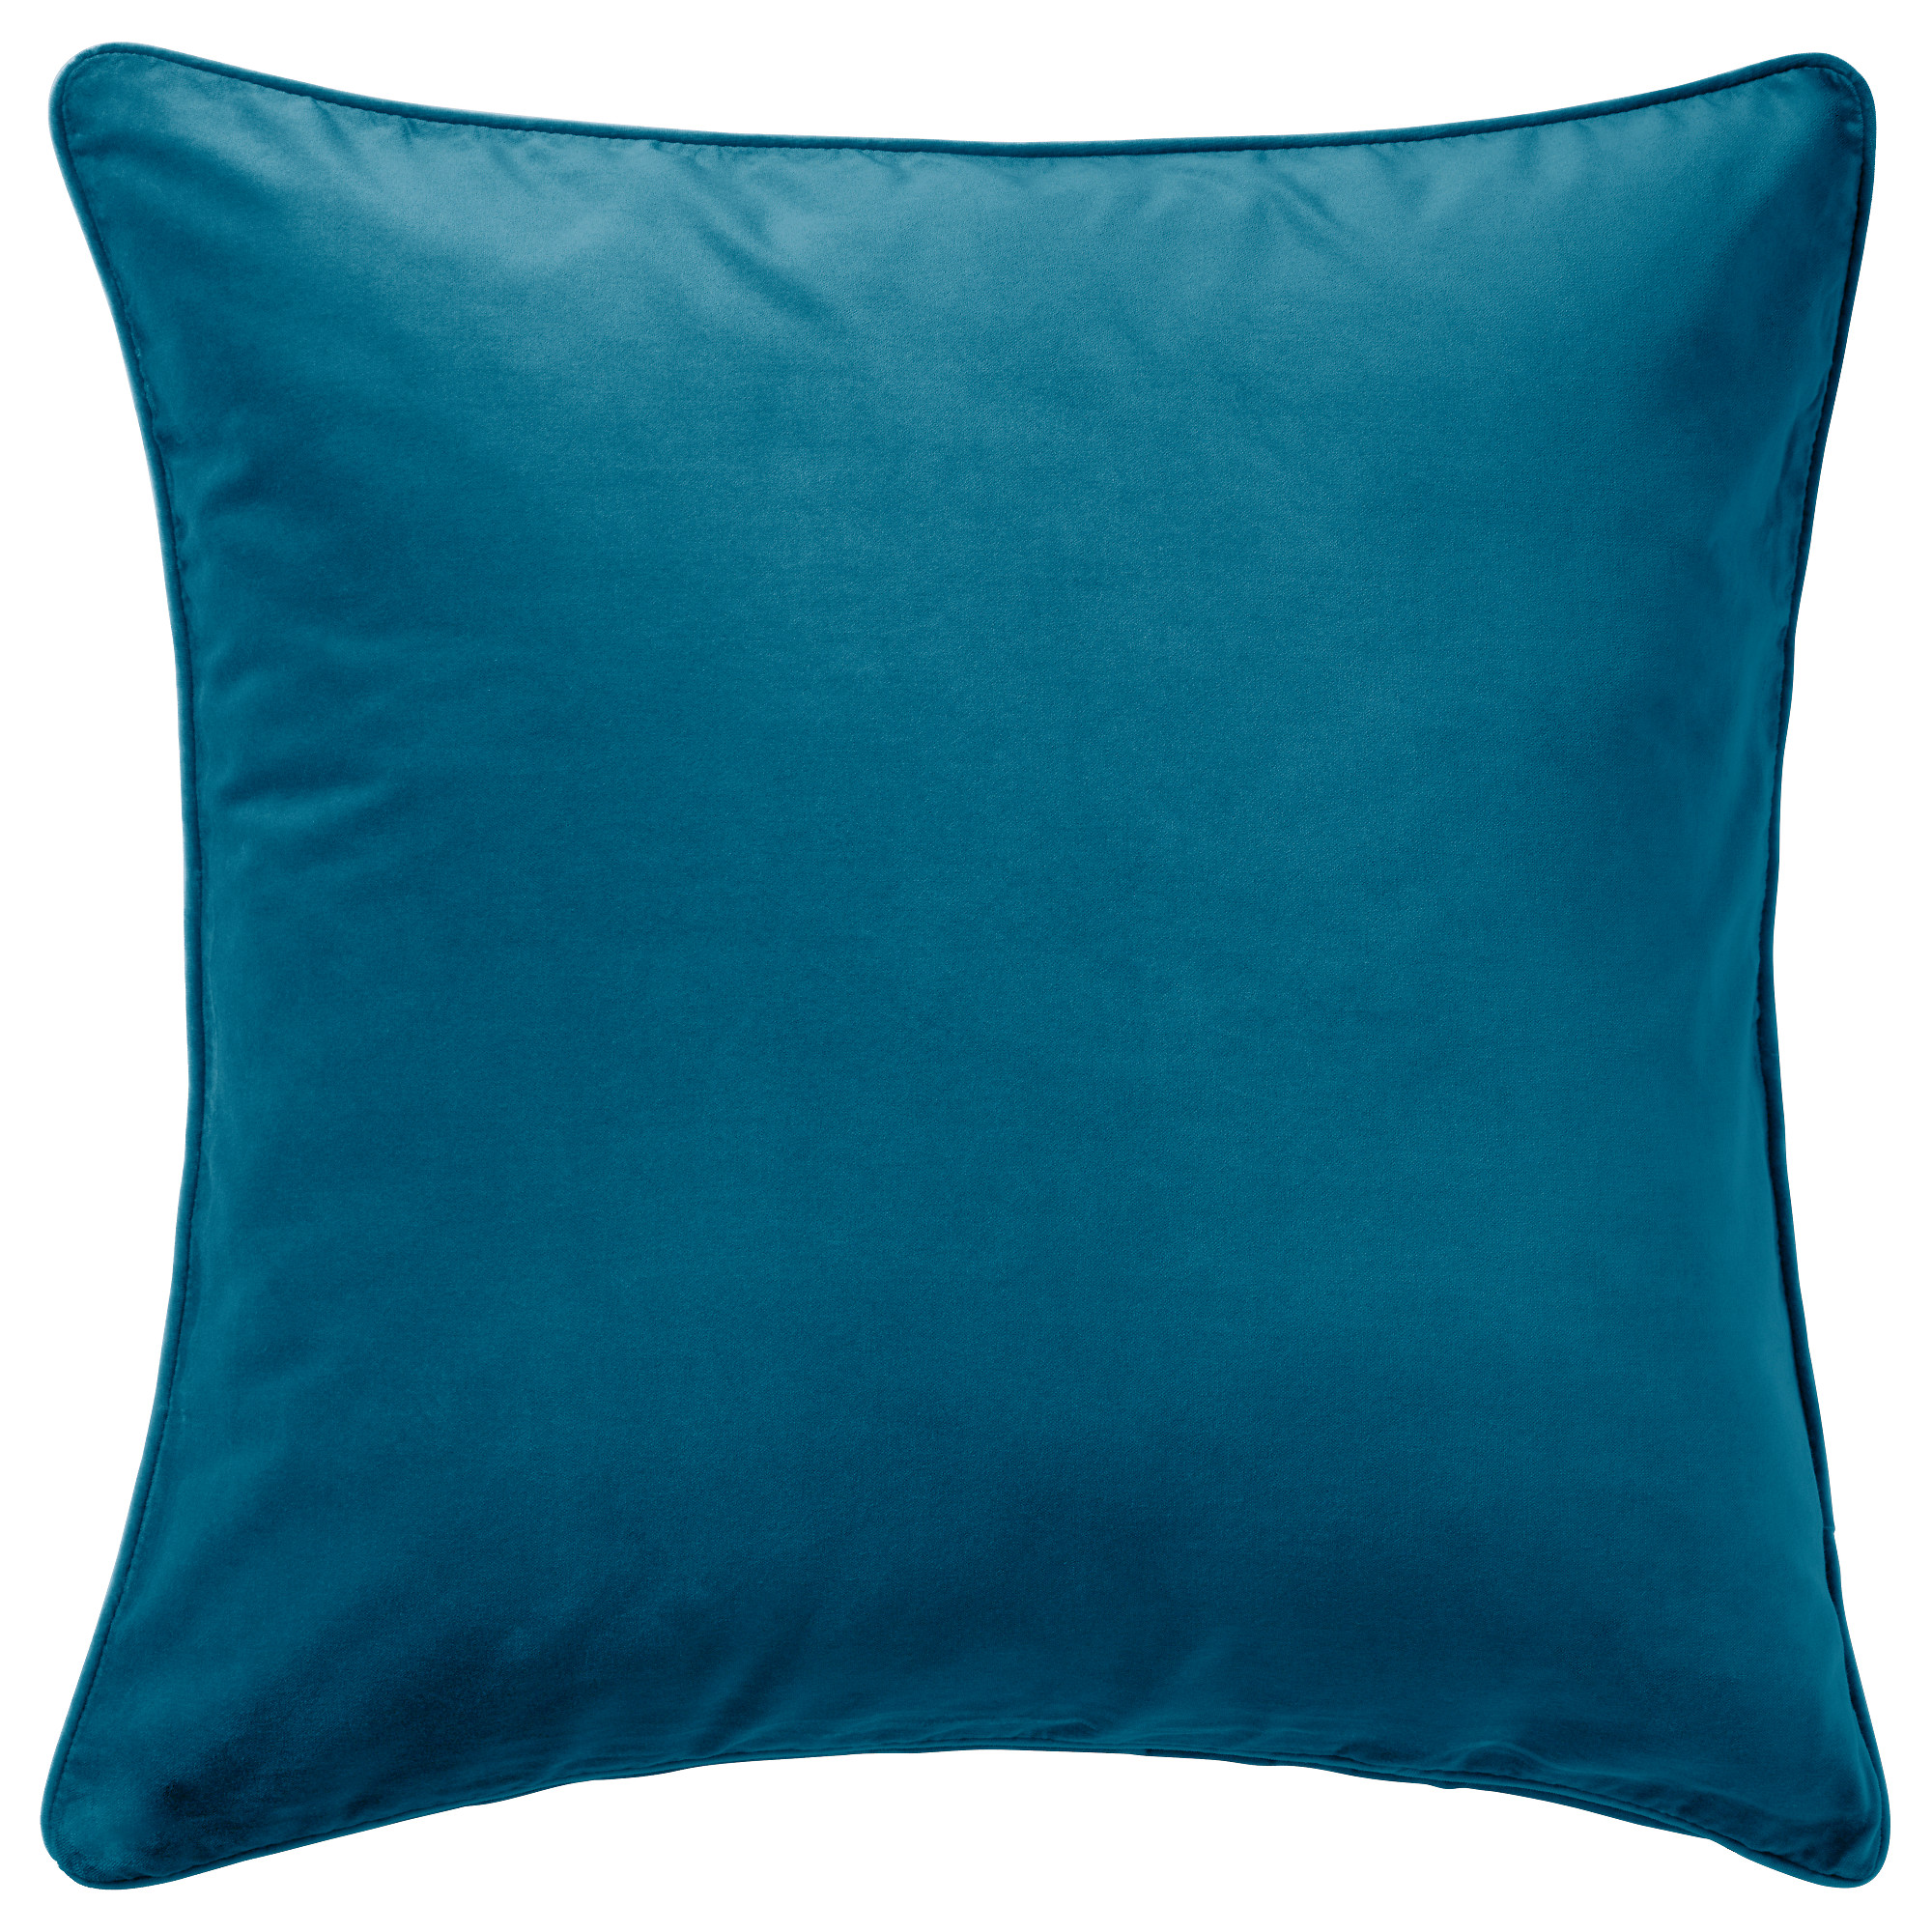 Compact cushion covers sanela cushion cover, dark turquoise length: 26  eswruaw